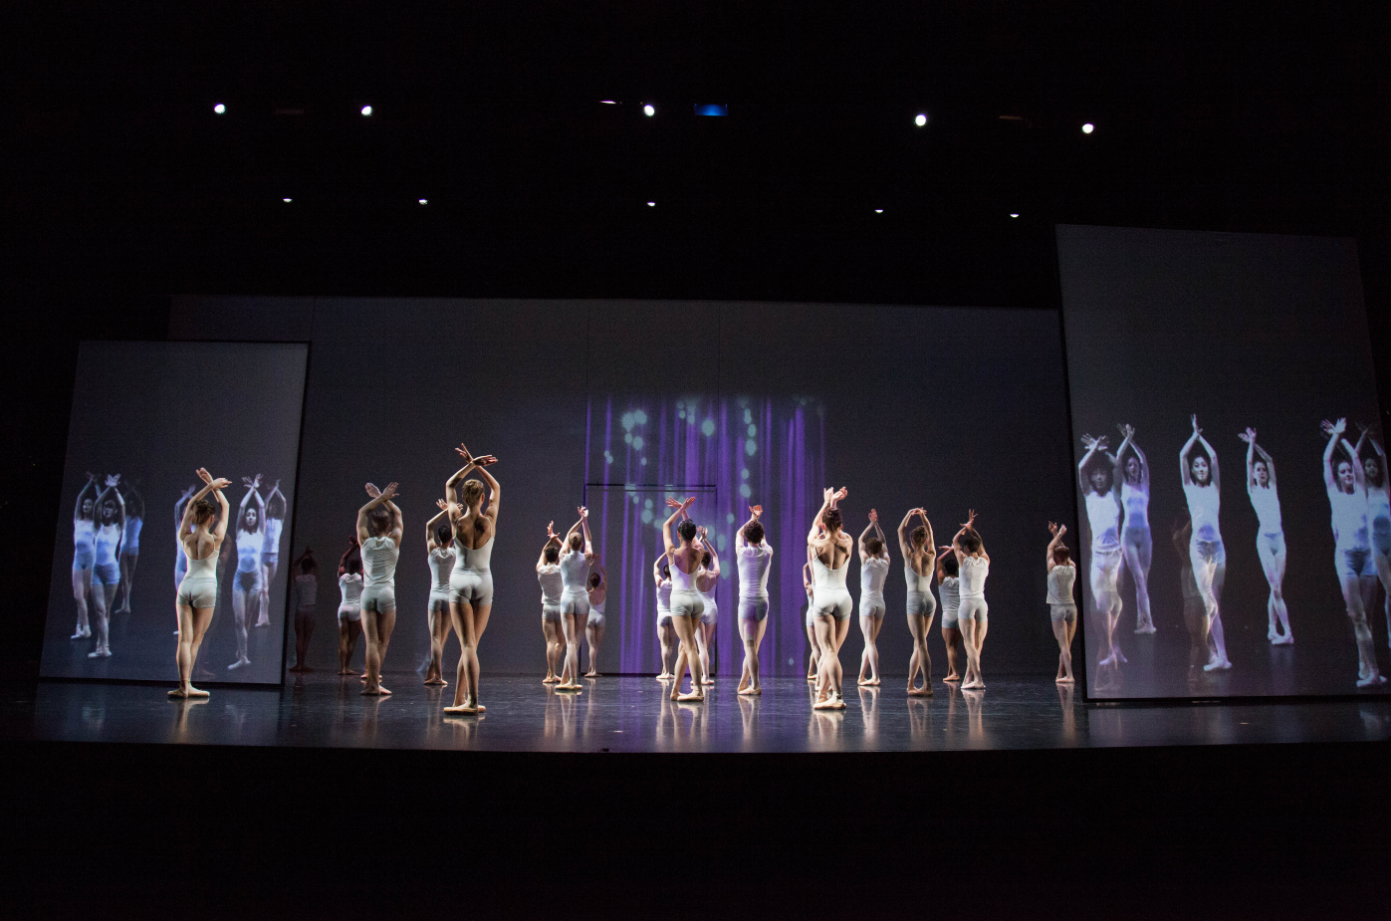 NBS dancers perform STREAM, a work that was choreographed byShaun Amyot and Michael Schumacher for AI 12. STREAM featured dancers in Toronto and Amsterdam, performing and interacting together through a live-streamed feed.